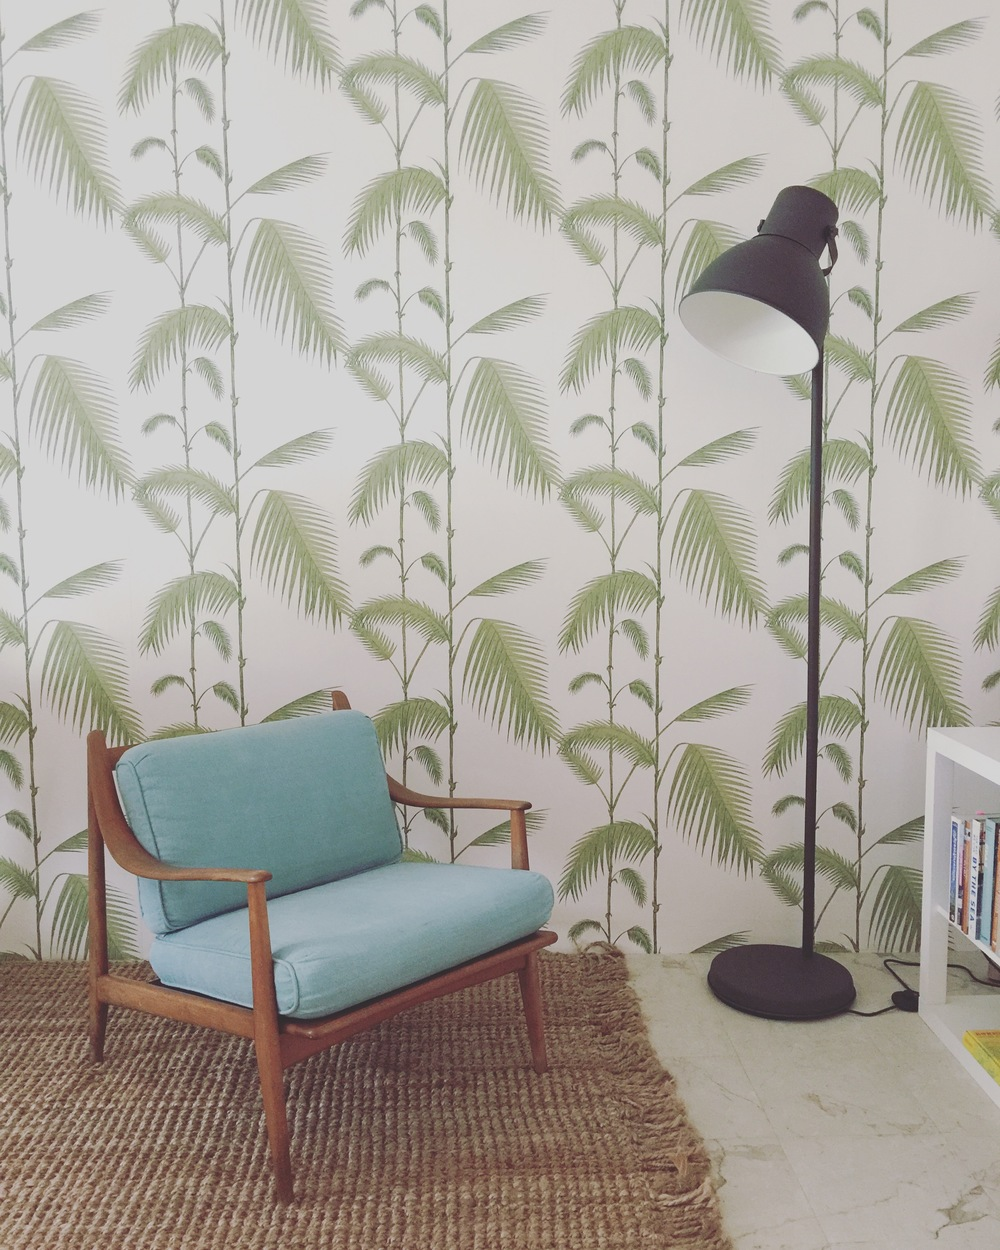 Employee Break Room: where we dream tropical daydreams